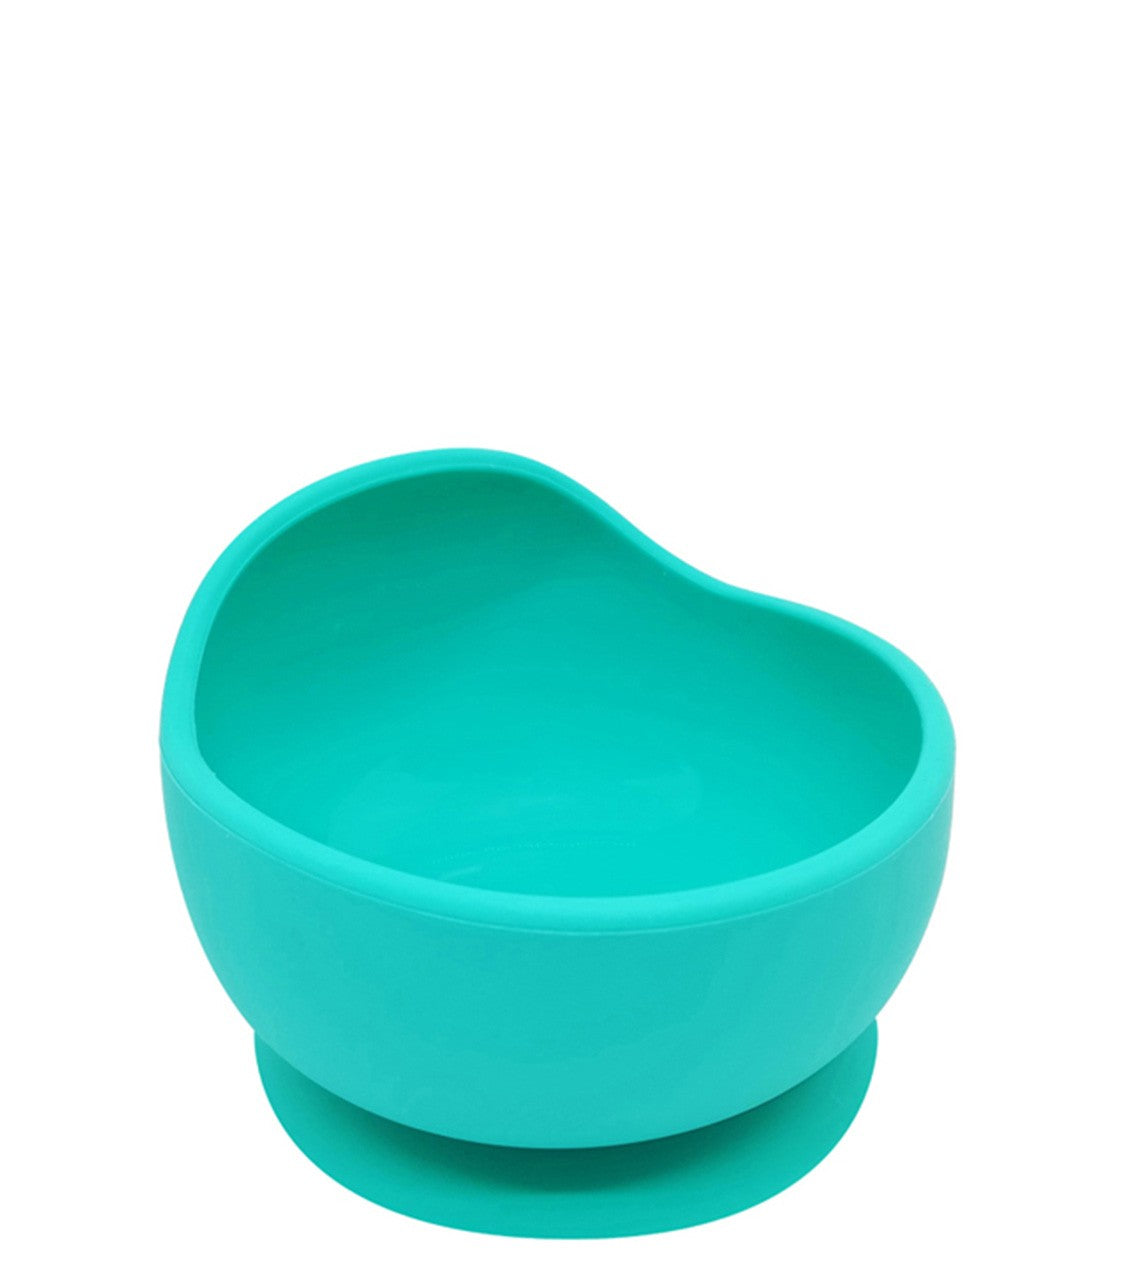 Li'l Twinkies Silicone Weaning Bowl, Teal